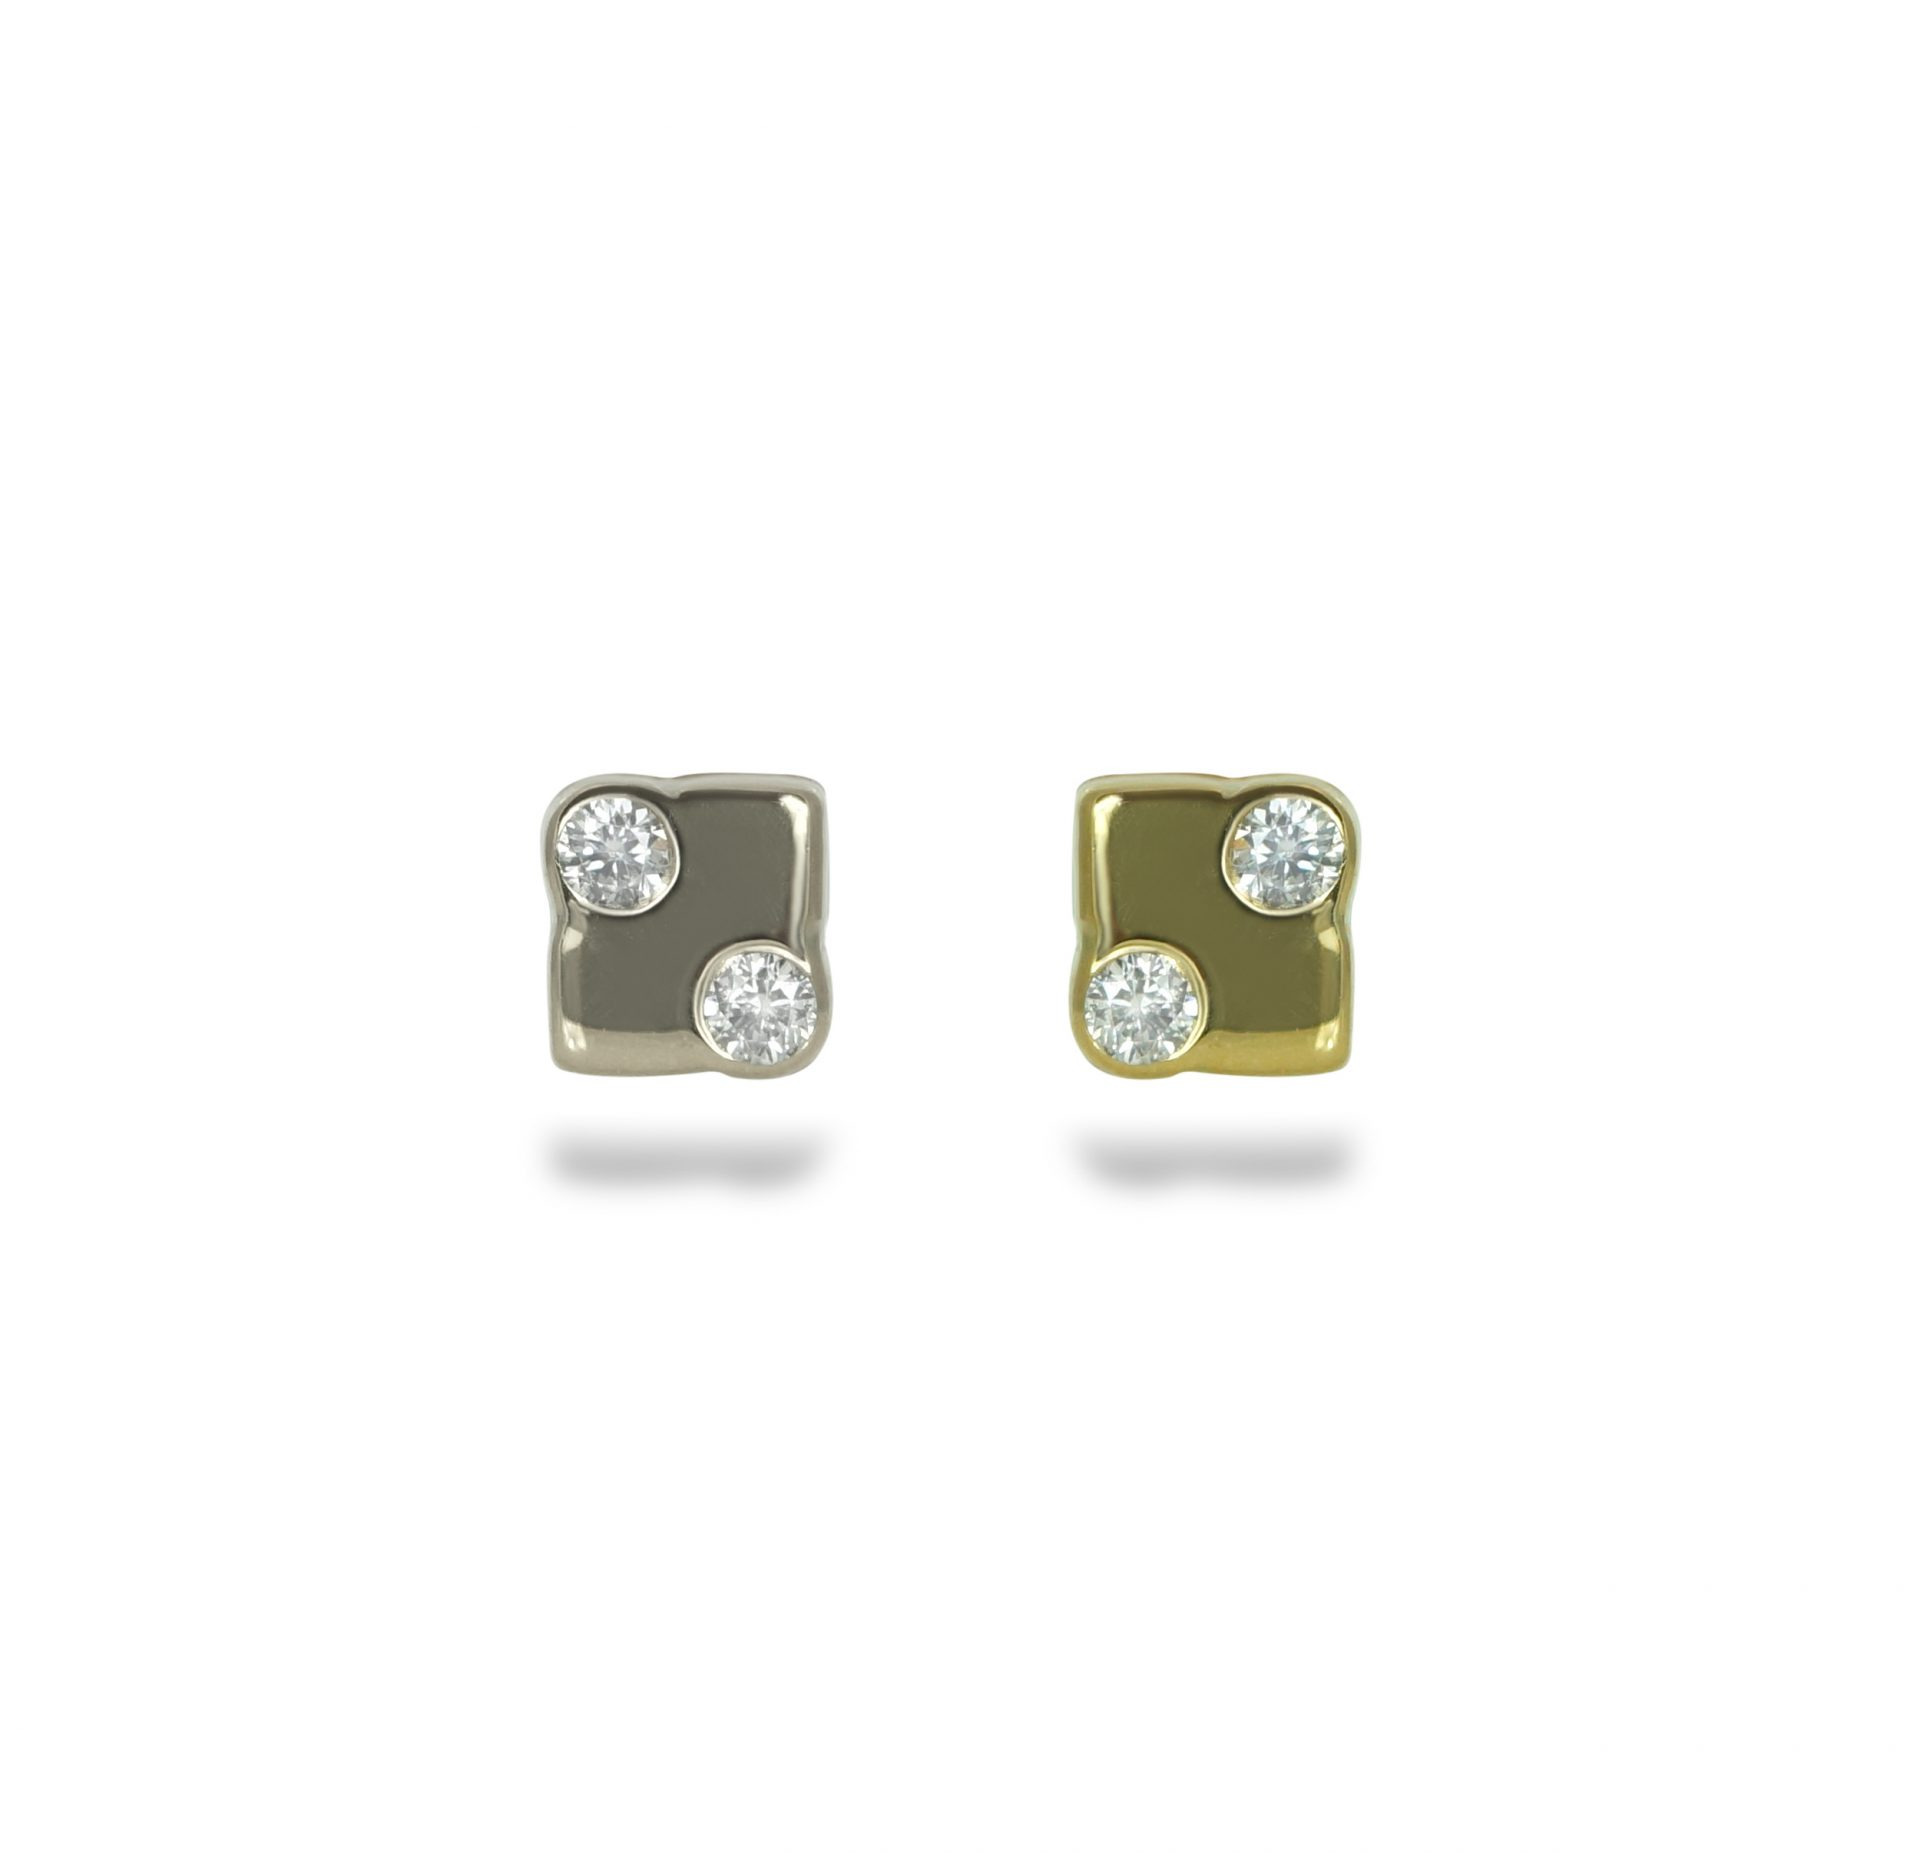 High-Quality-18k-Yellow-Gold-Diamond-Stud-Lena-Cohen-Luxury-Piercing-Jewellery-18k-yellow-white-gold